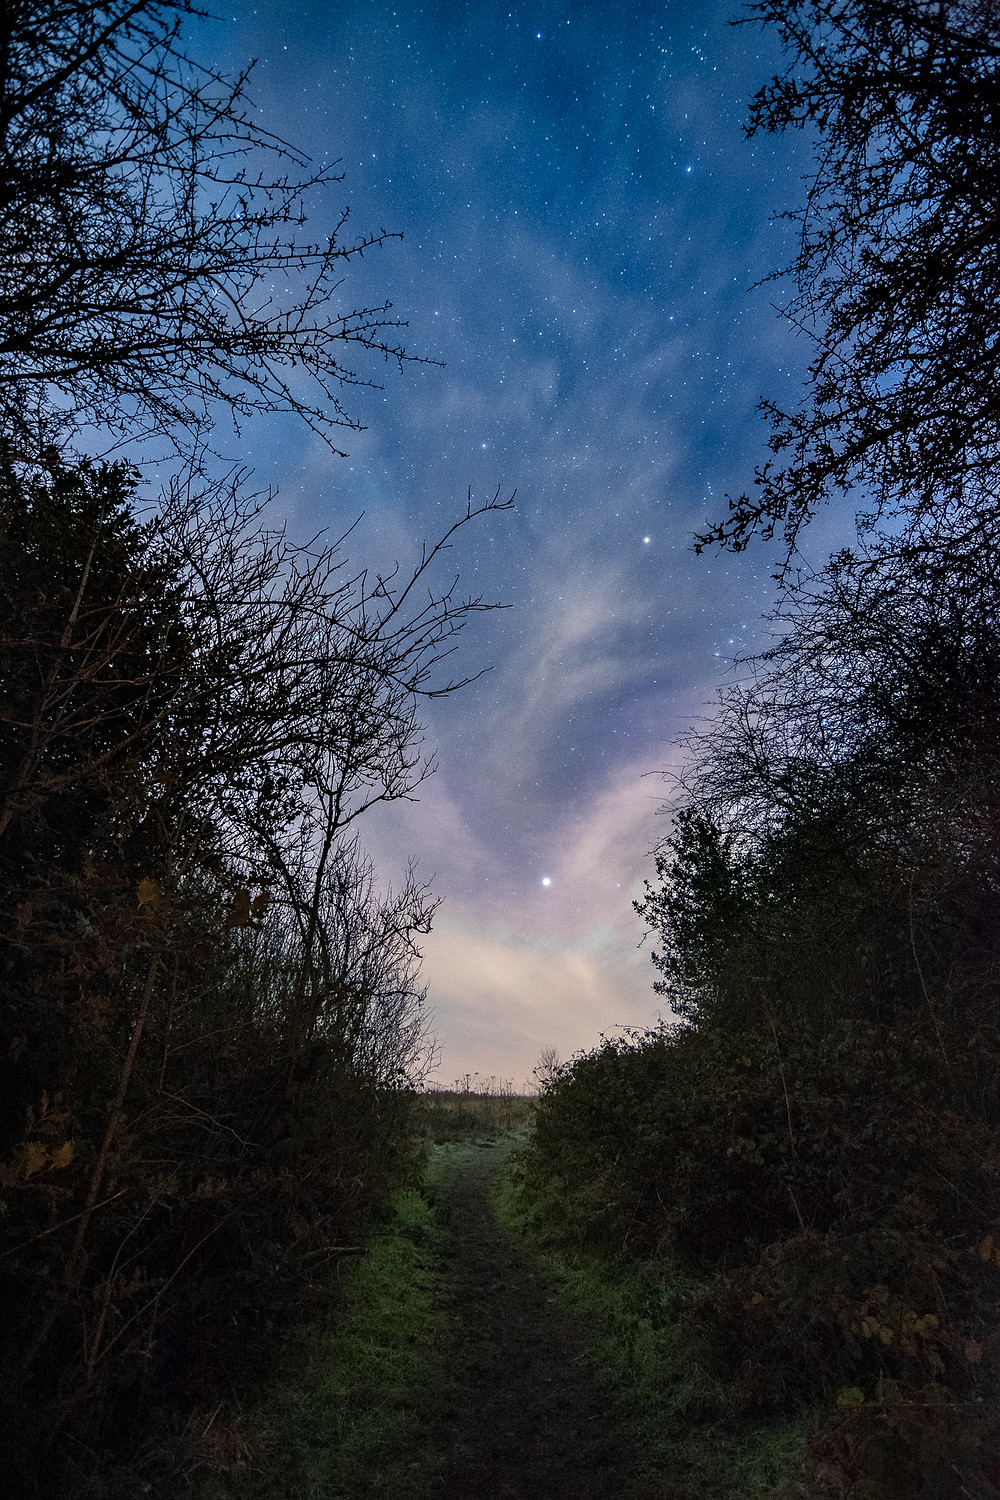 astrophotography uk tips advice